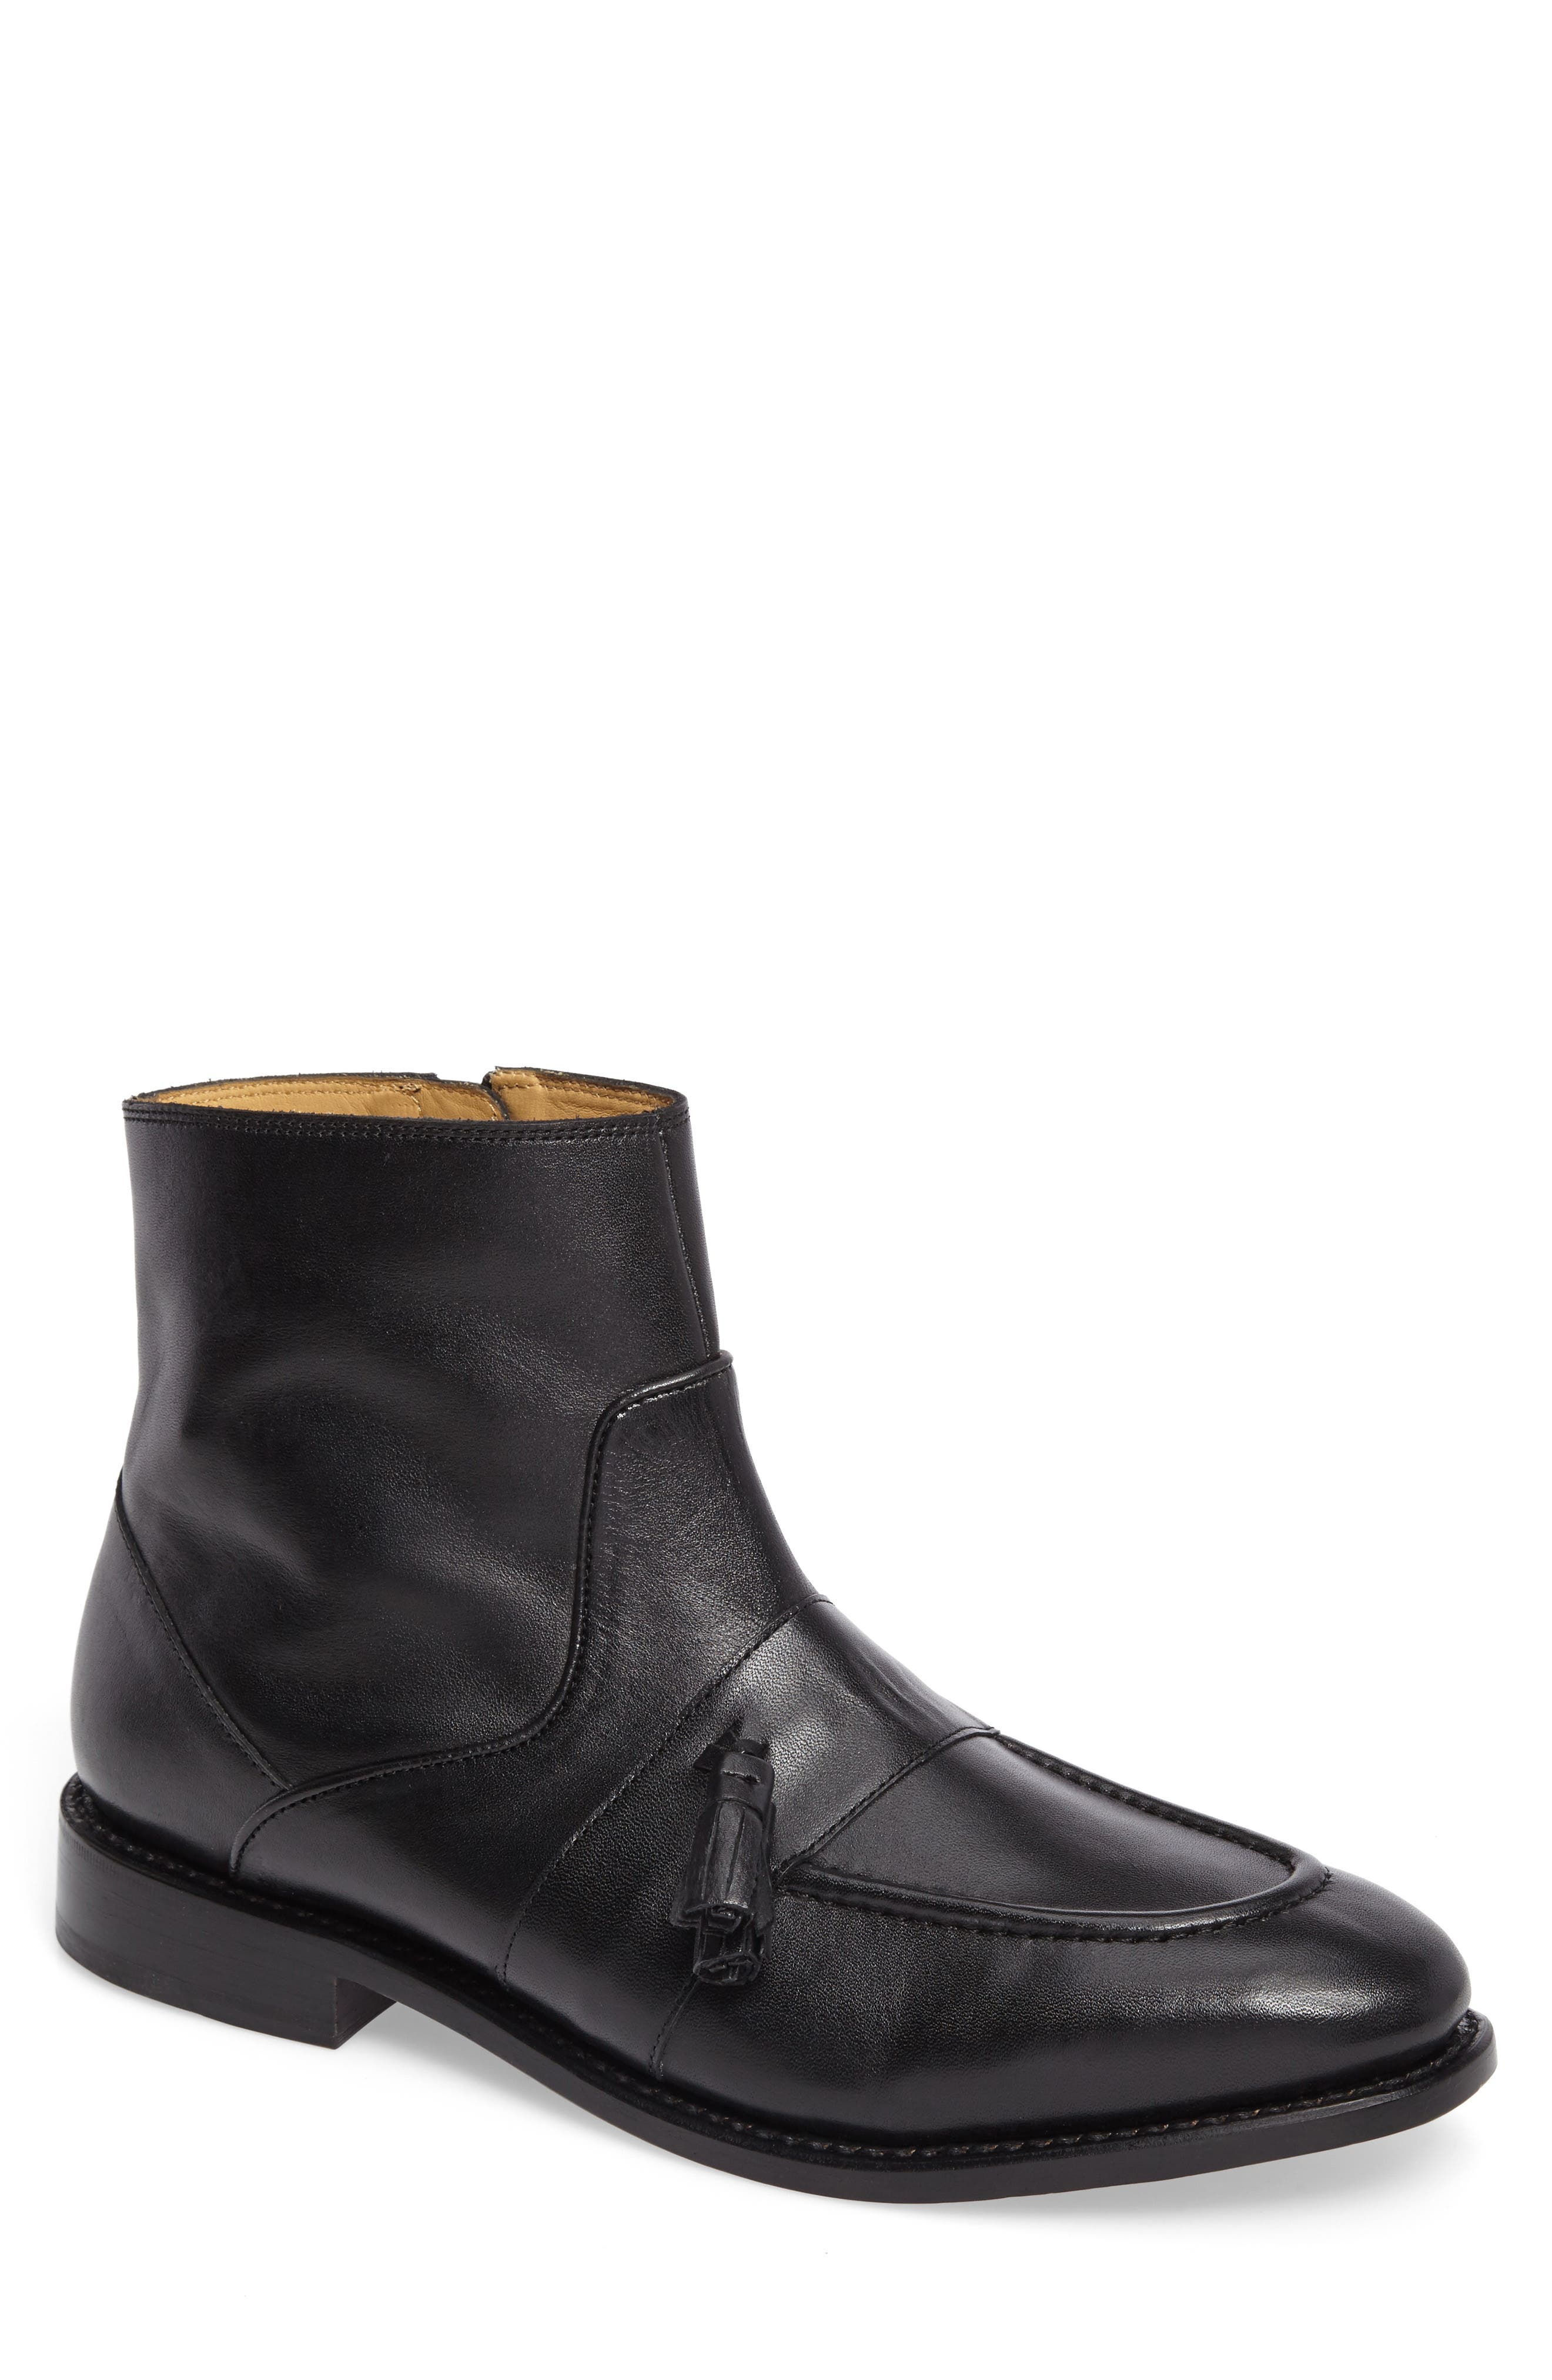 Sidney Zip Boot,                             Main thumbnail 1, color,                             NERO LEATHER